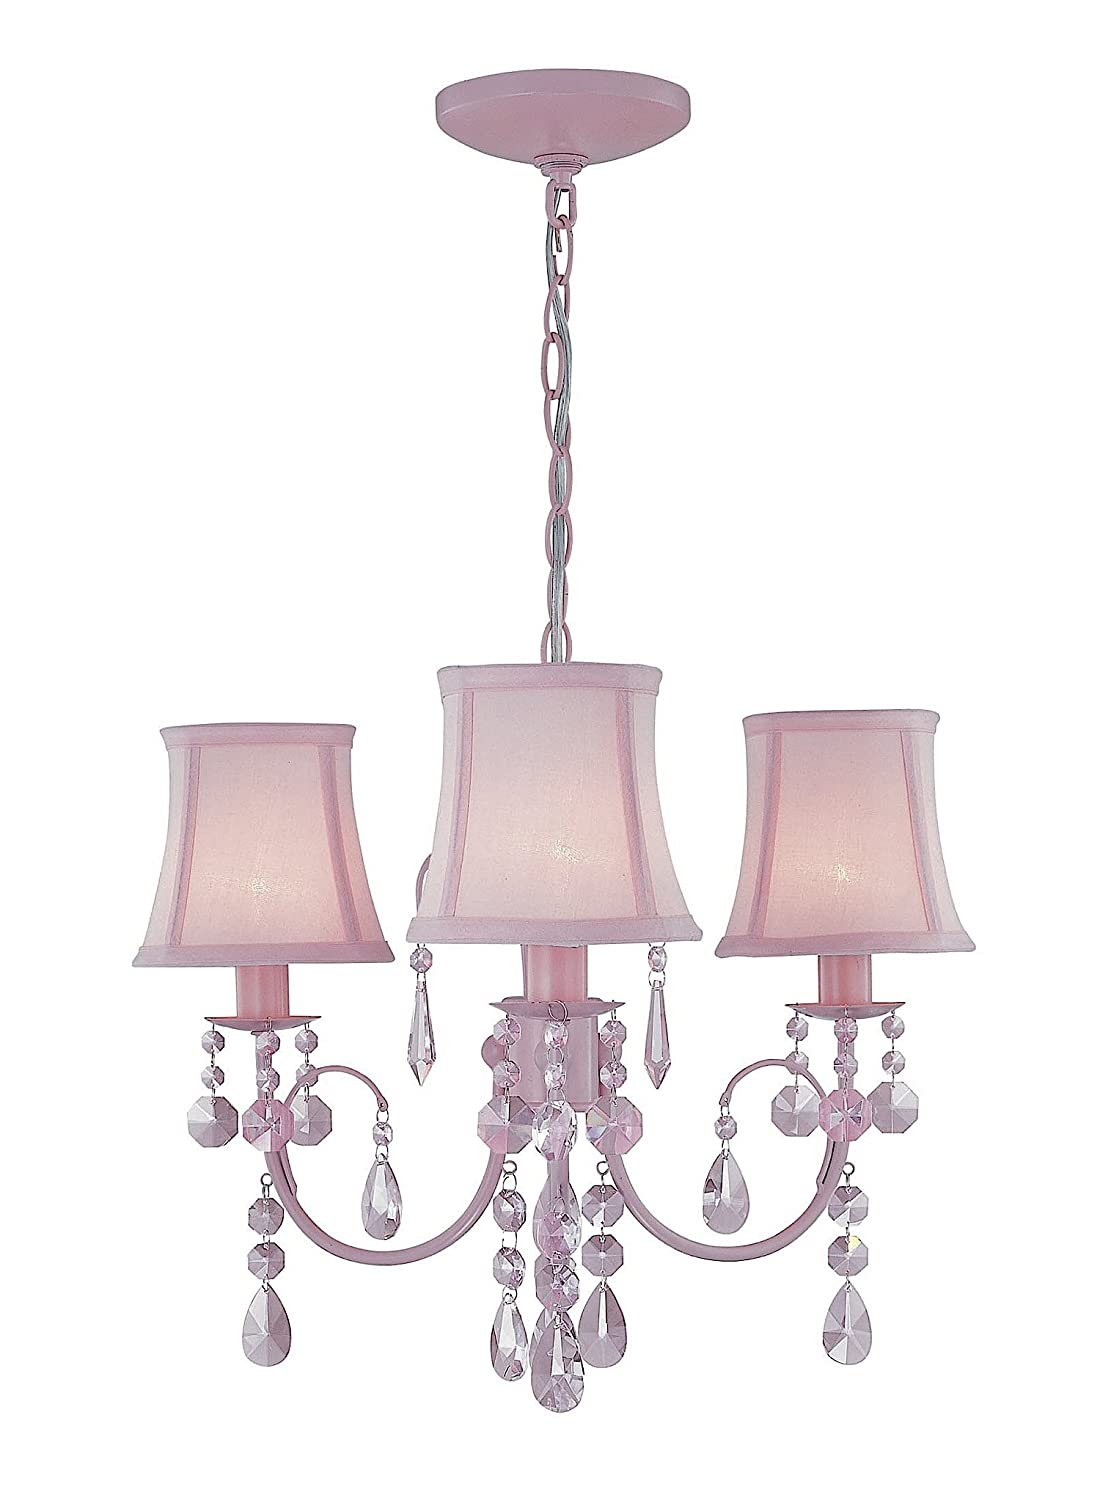 Lite source ls 19528pink sofie 3 light chandelier with crystals and lite source ls 19528pink sofie 3 light chandelier with crystals and mini lamp shades pink amazon arubaitofo Gallery